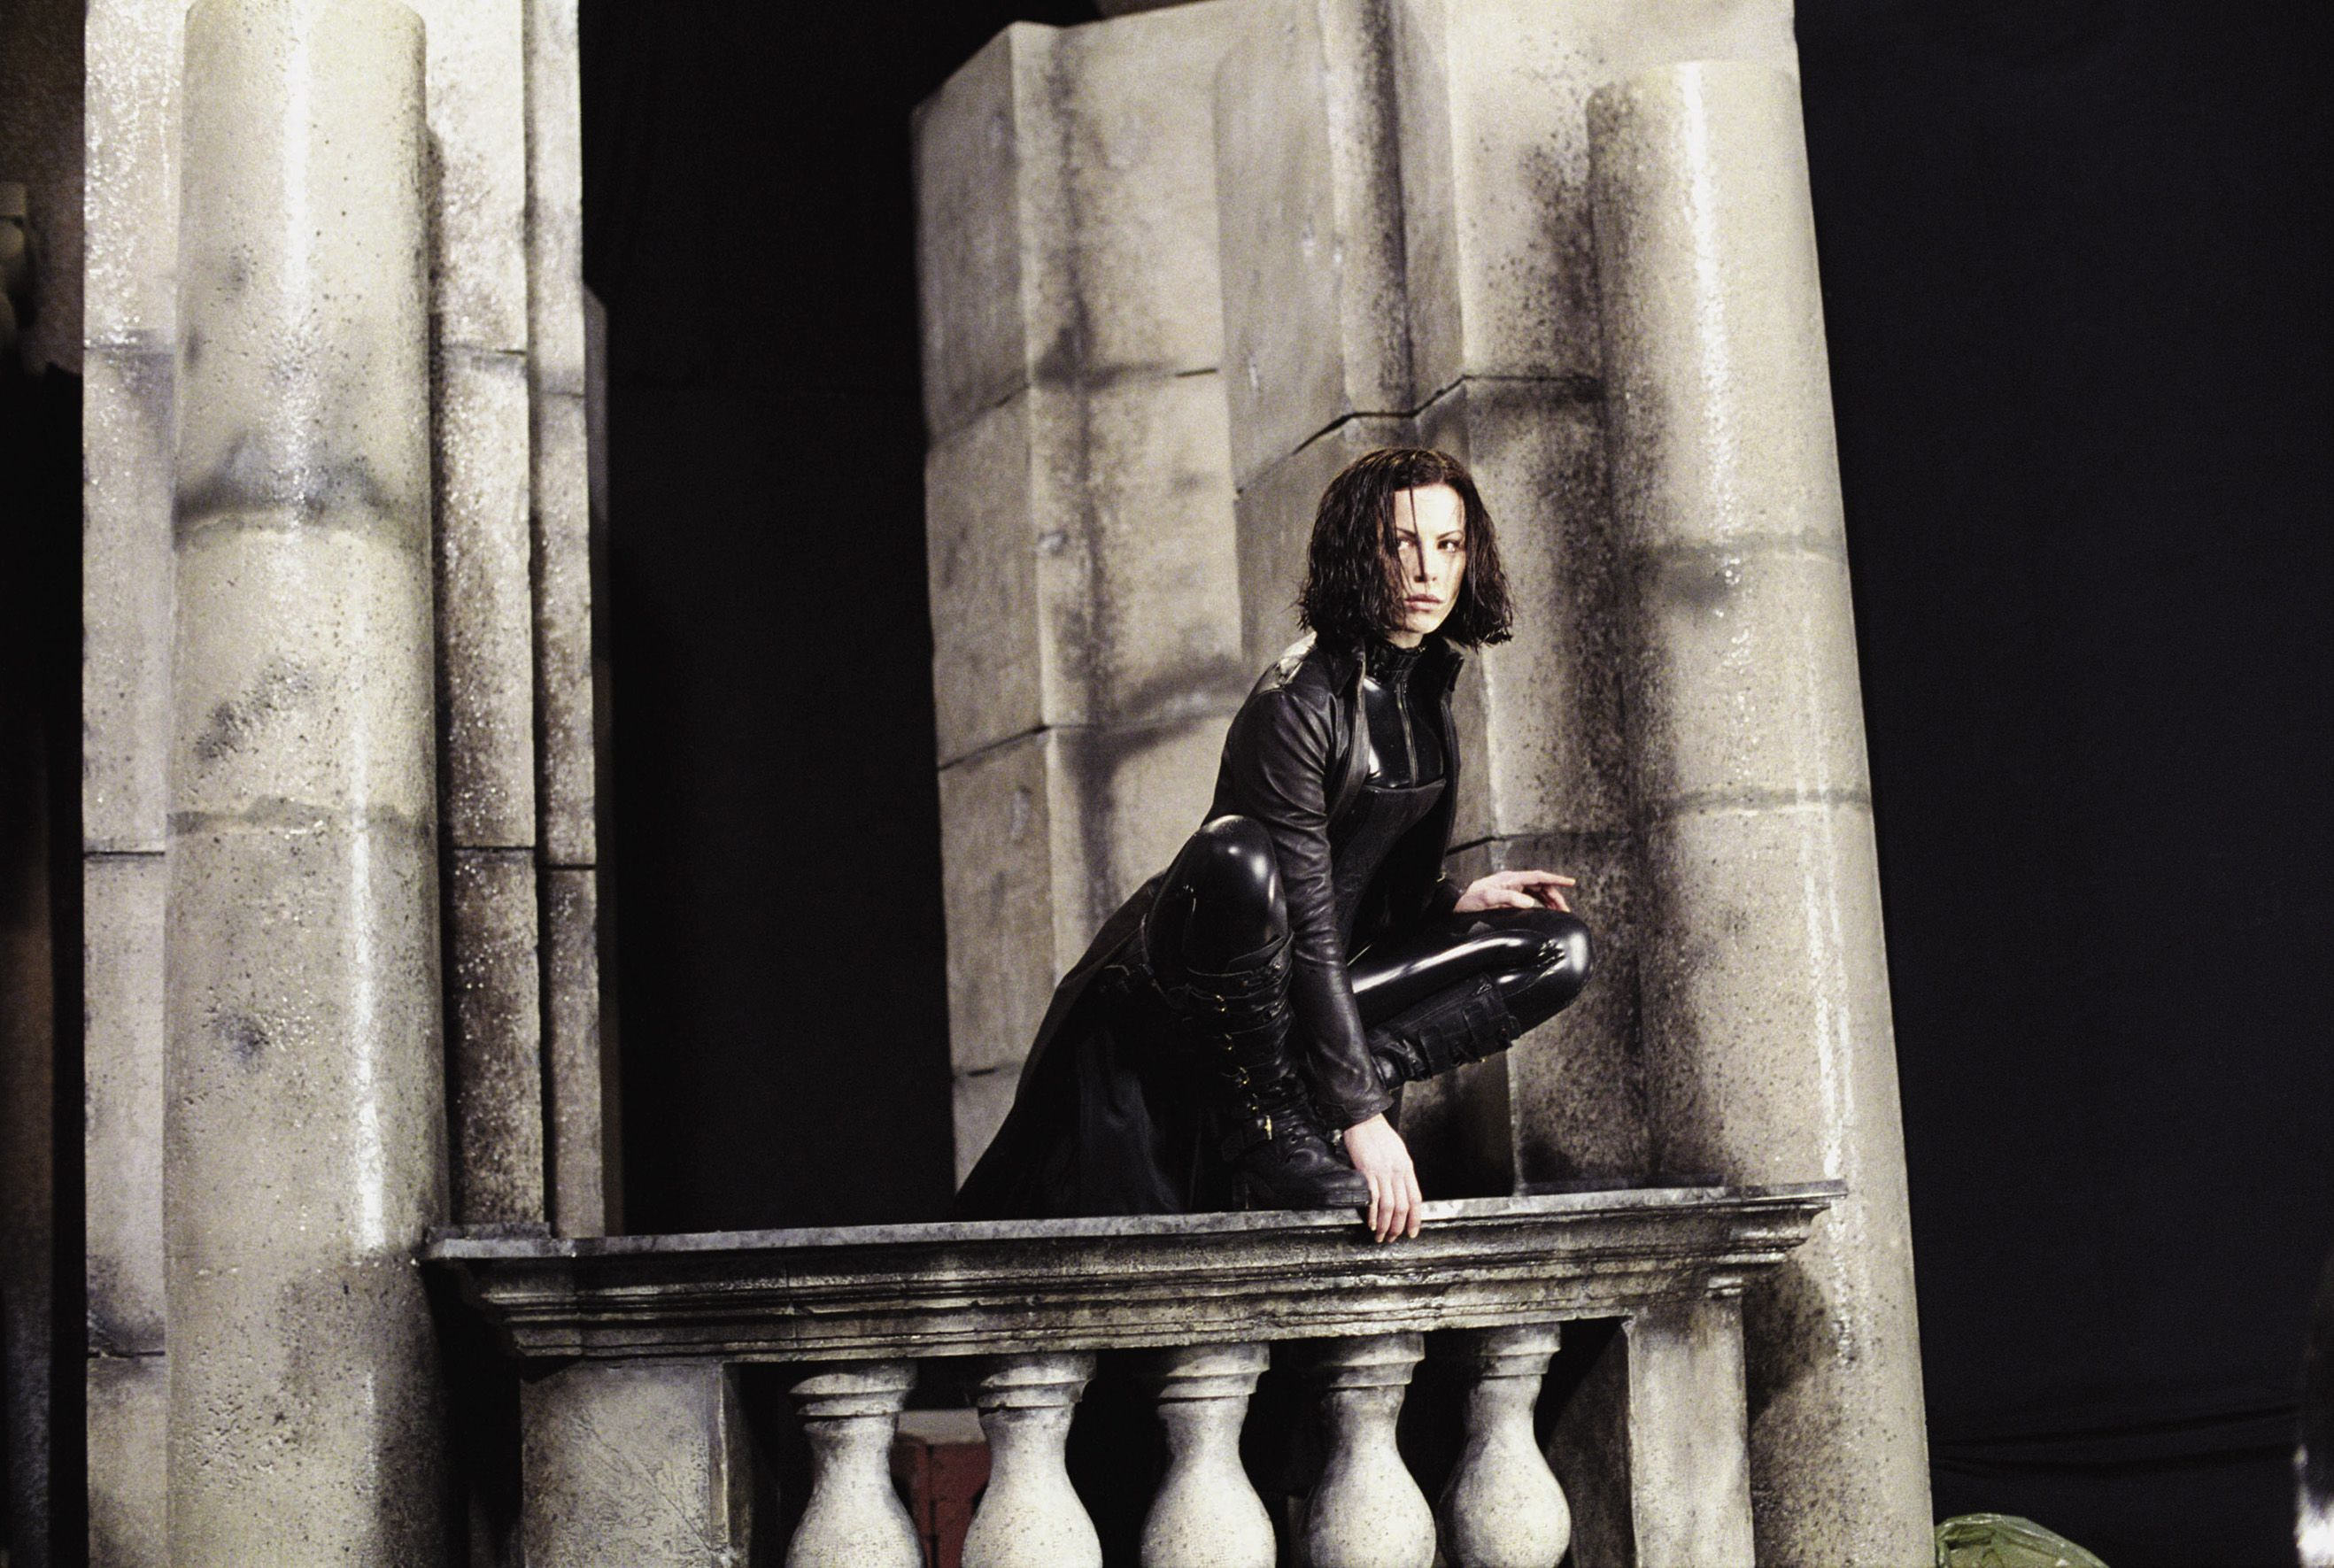 Kate Besckinsale as Selene in Underworld (2003) - a vampire film mounted as a series of slick graphic novel poses